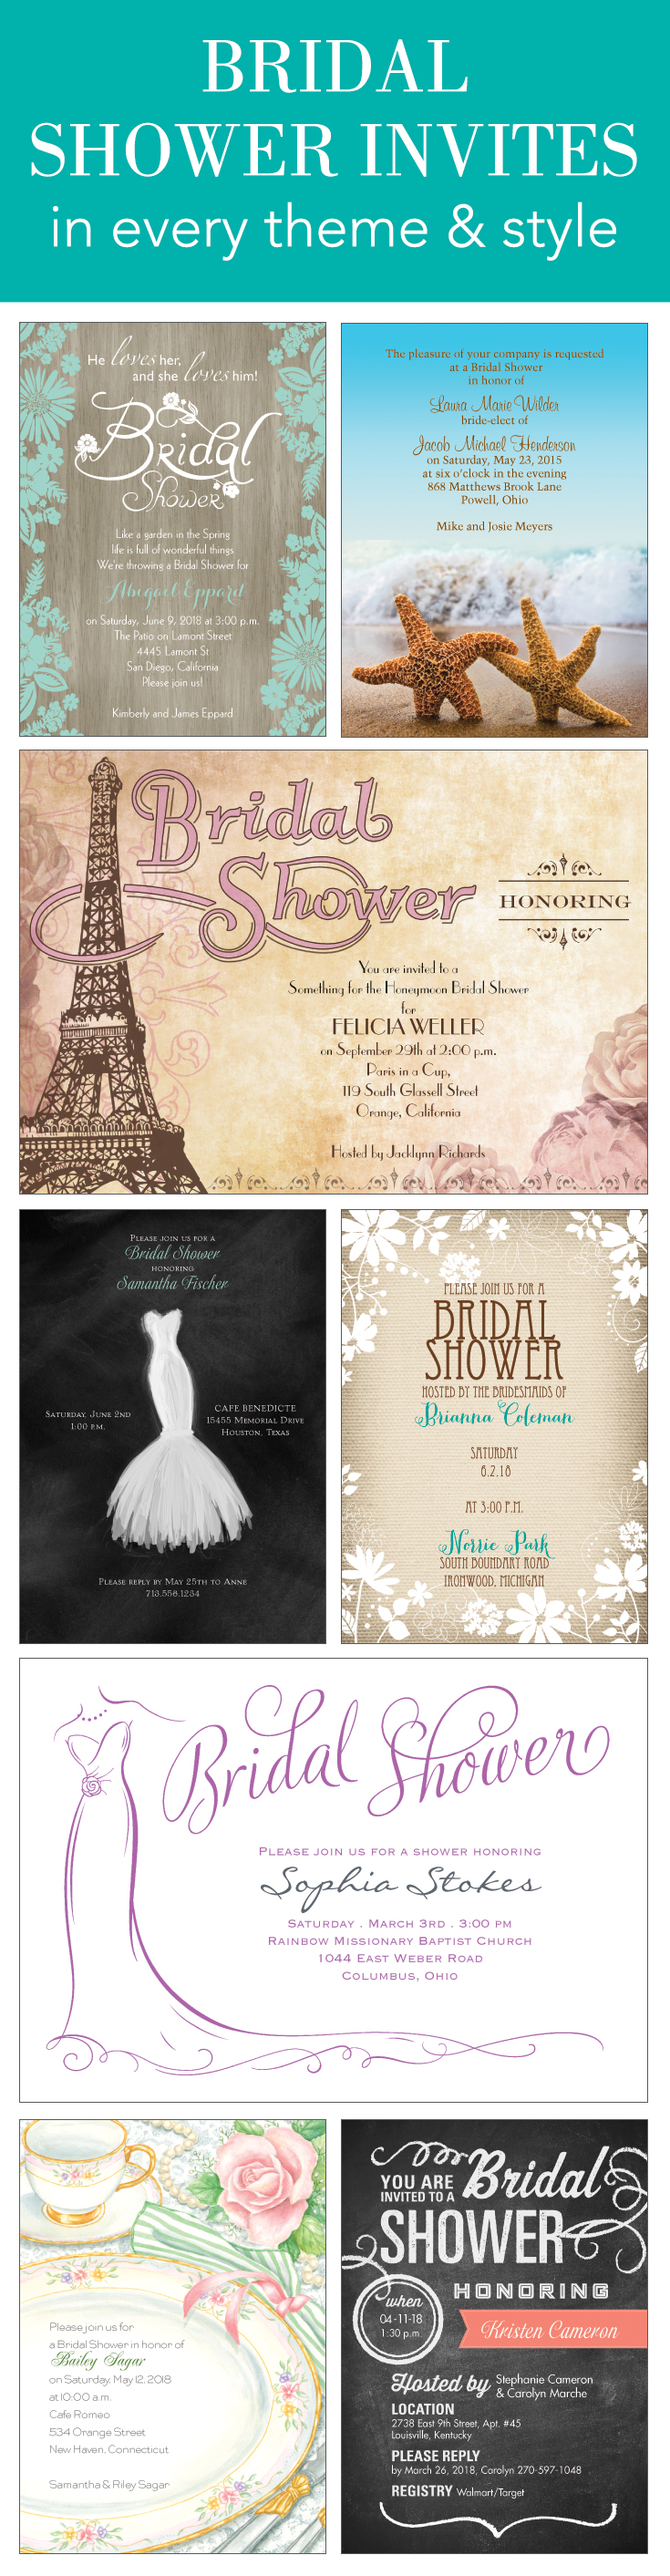 Planning a bridal shower? Set your theme, invite in style and shower ...